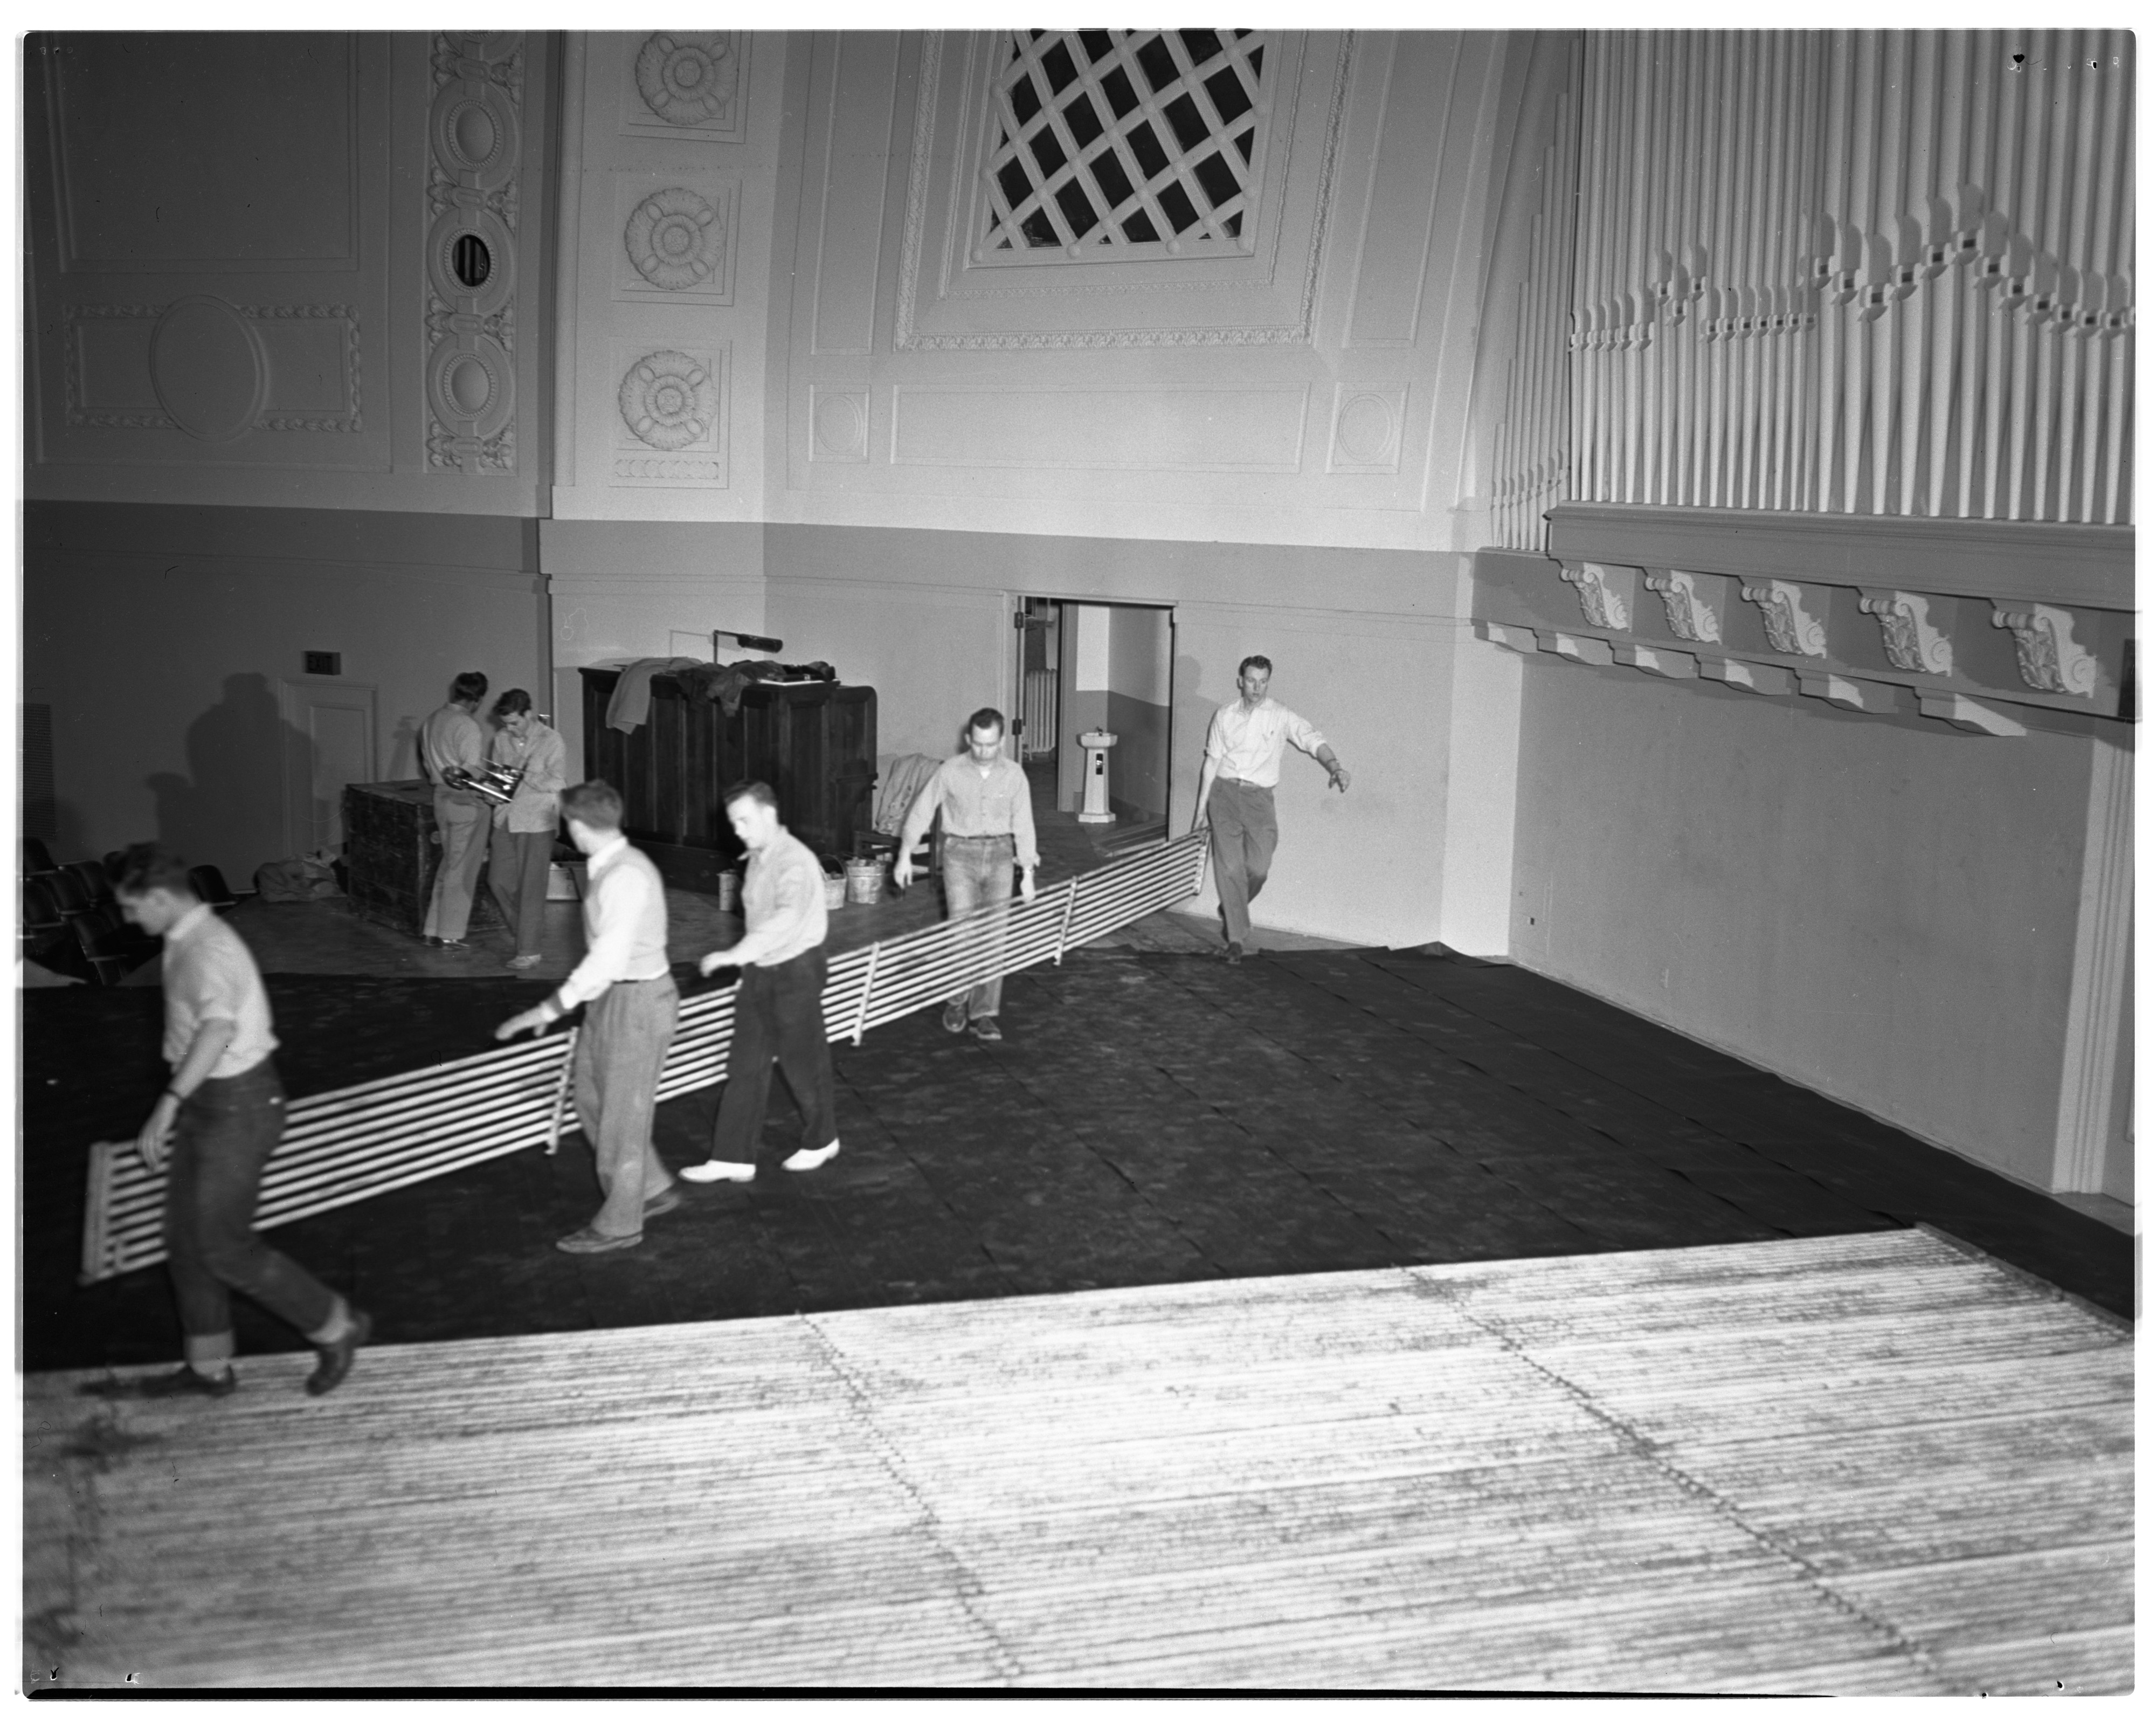 Preparing Hill Auditorium Stage for Ice Show, March 1950 image